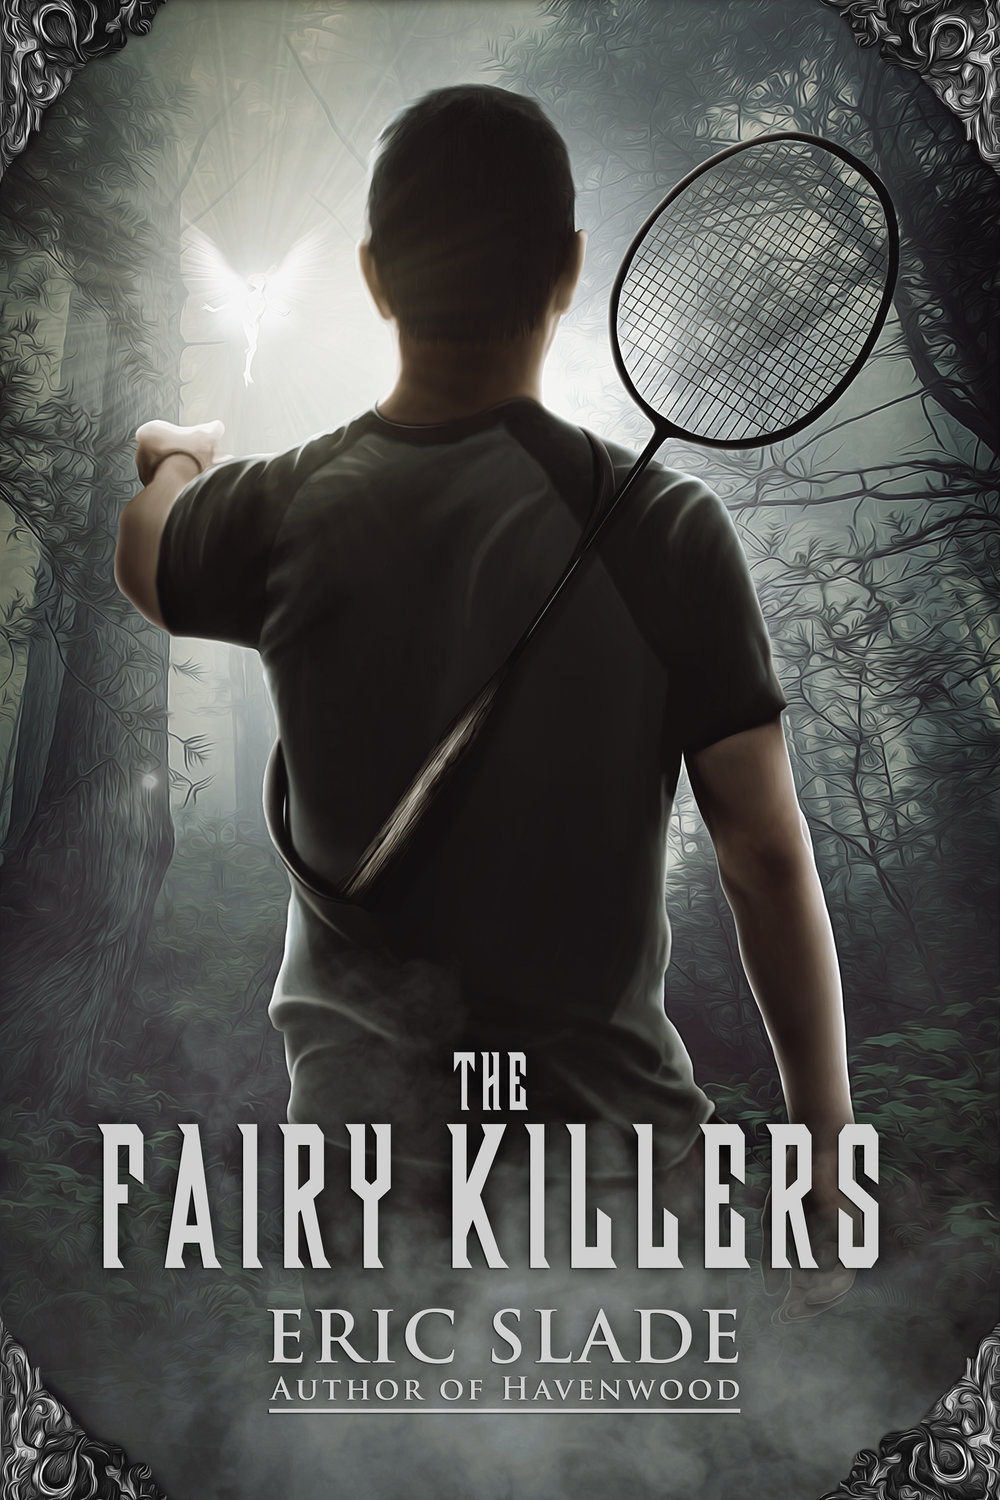 ebook - JPG - The Fairy Killers.jpg